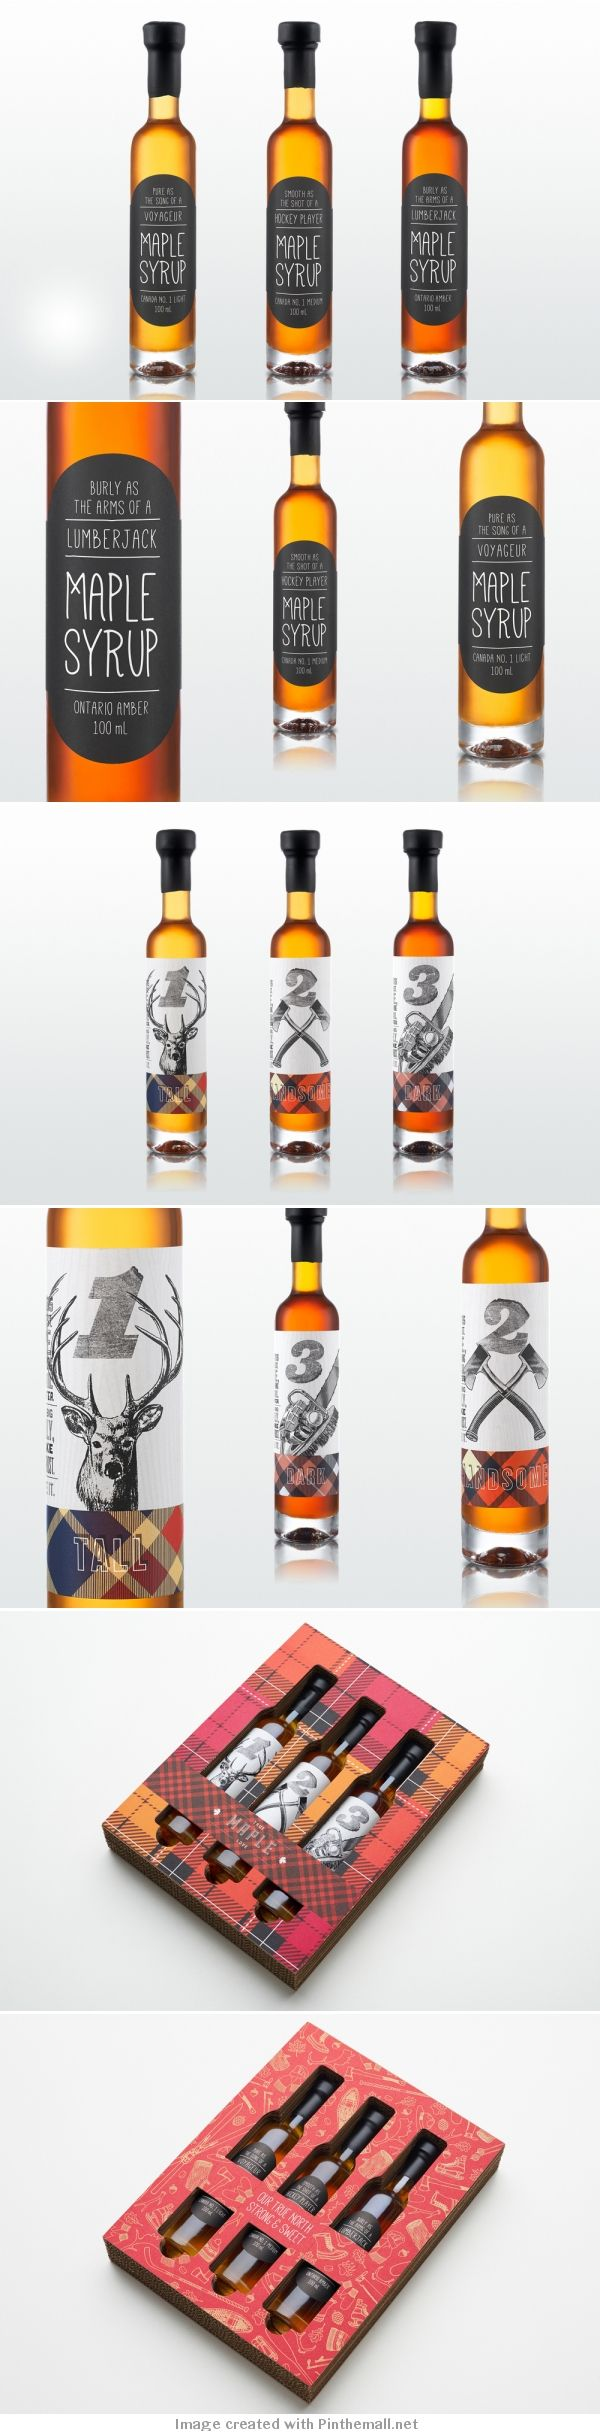 Ampoule laureen luhn design graphique - 2013 Holiday Syrup Packaging